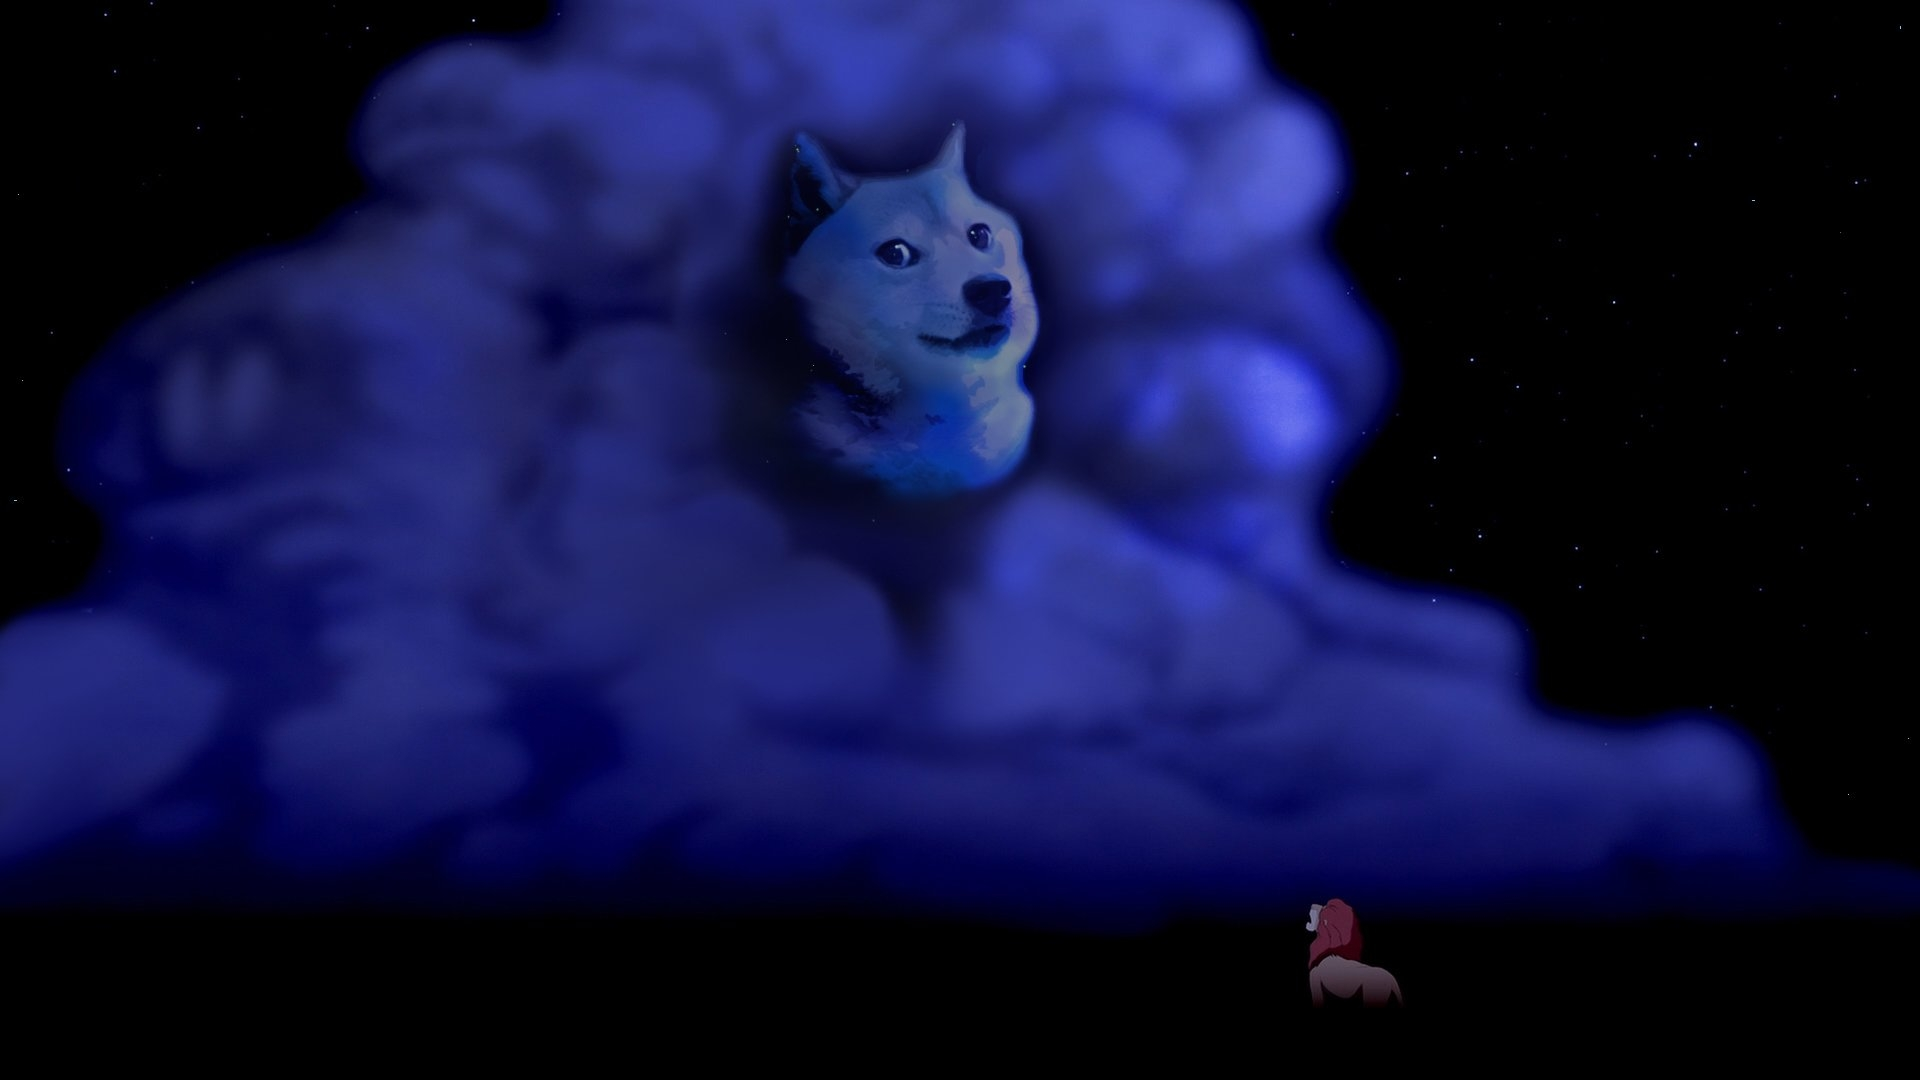 Lion King Doge   Doge Wallpaper 1920x1080 43825 1920x1080